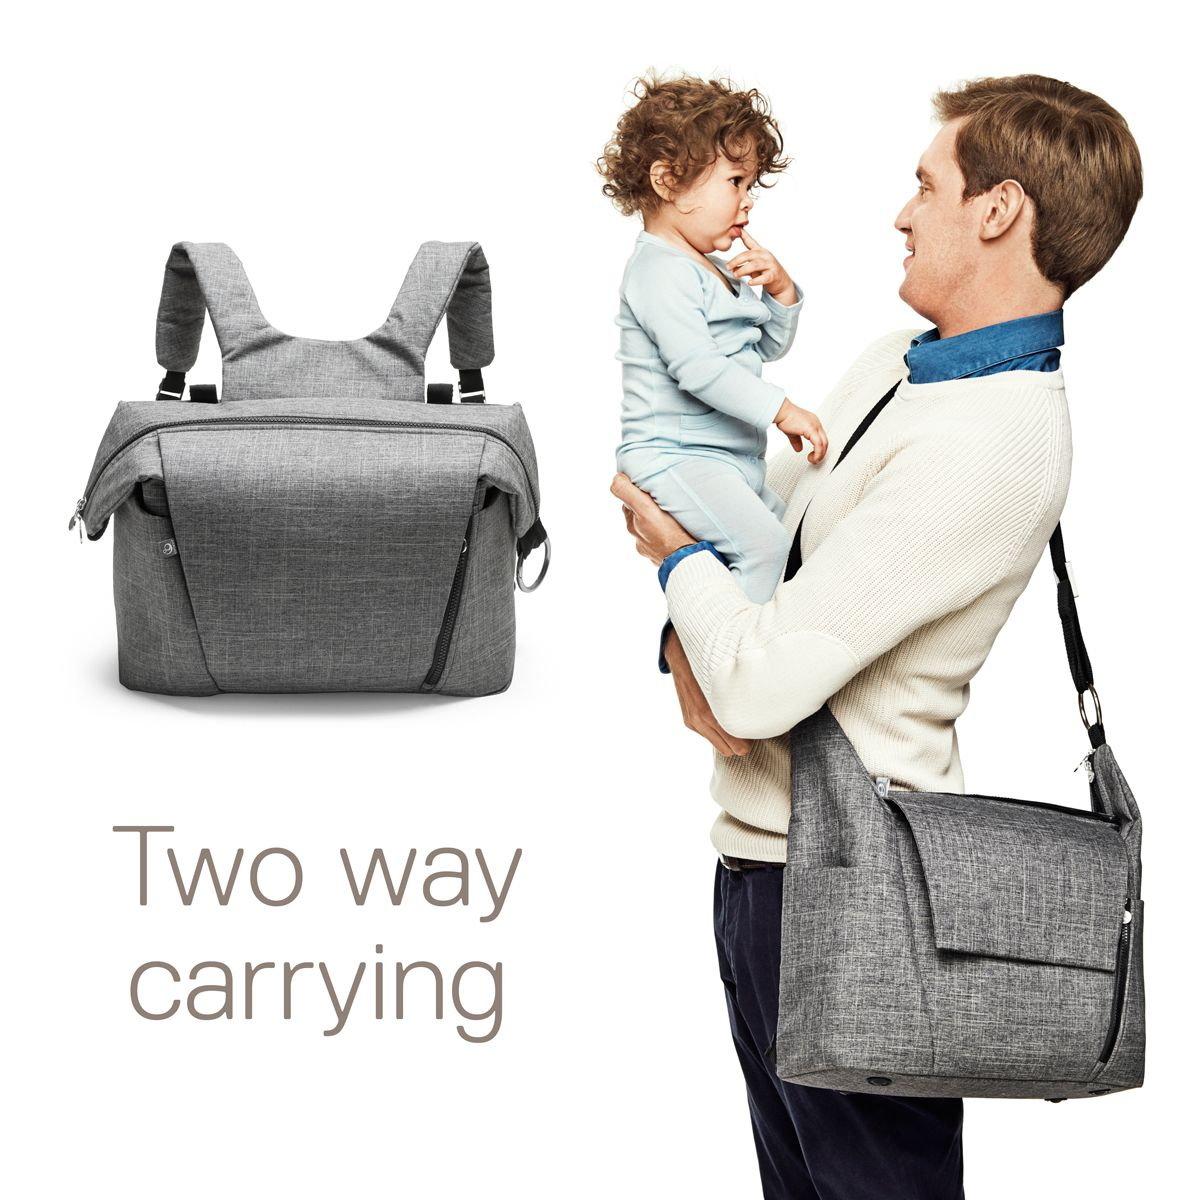 f4347f1ba84a7 New from Stokke - Our new changing bag was made to do just this by offering